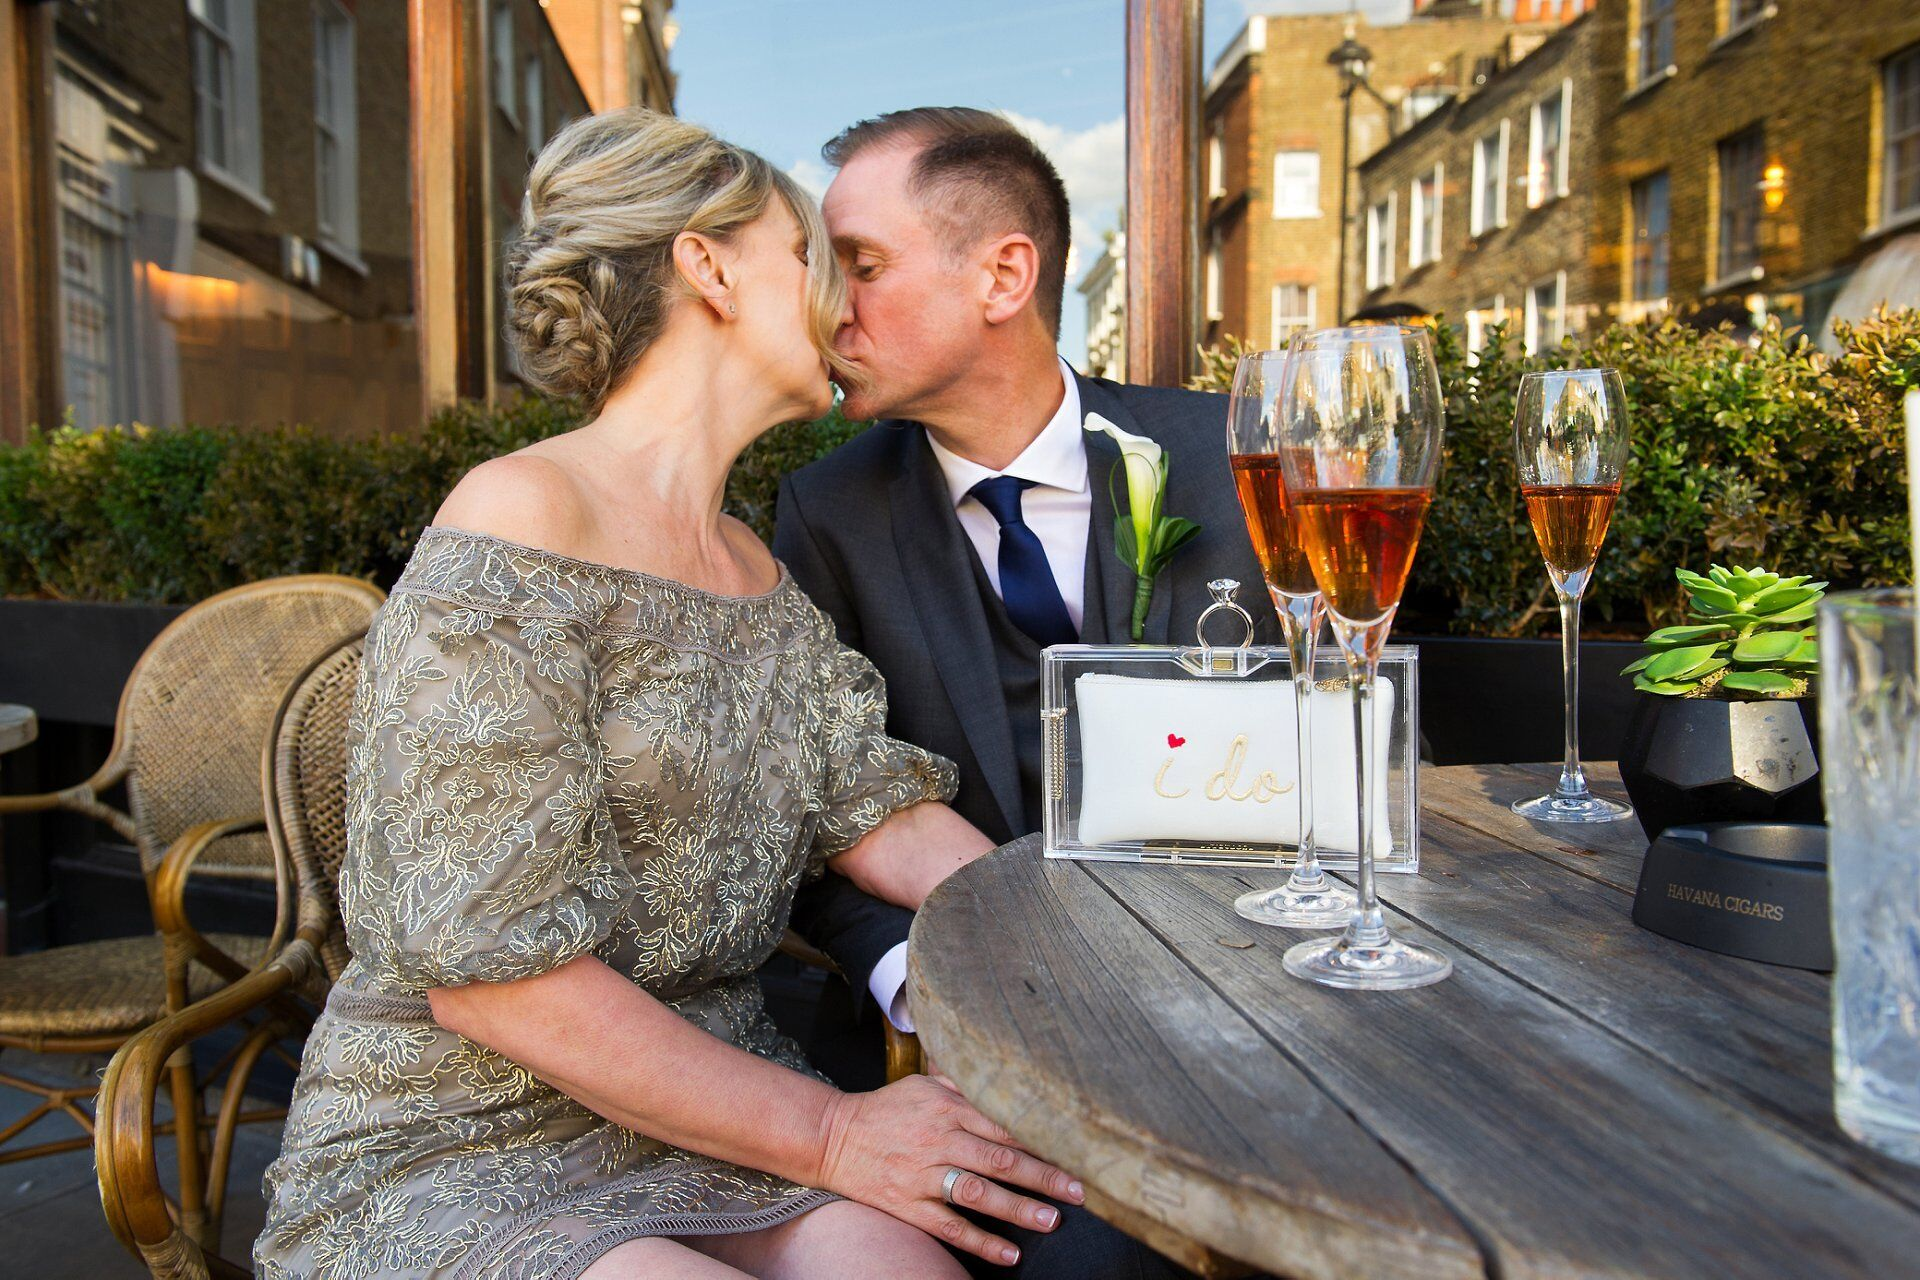 couple kissing harcourt wedding photographer ideal reception venue for old marylebone town hall ceremonies by emma duggan photography